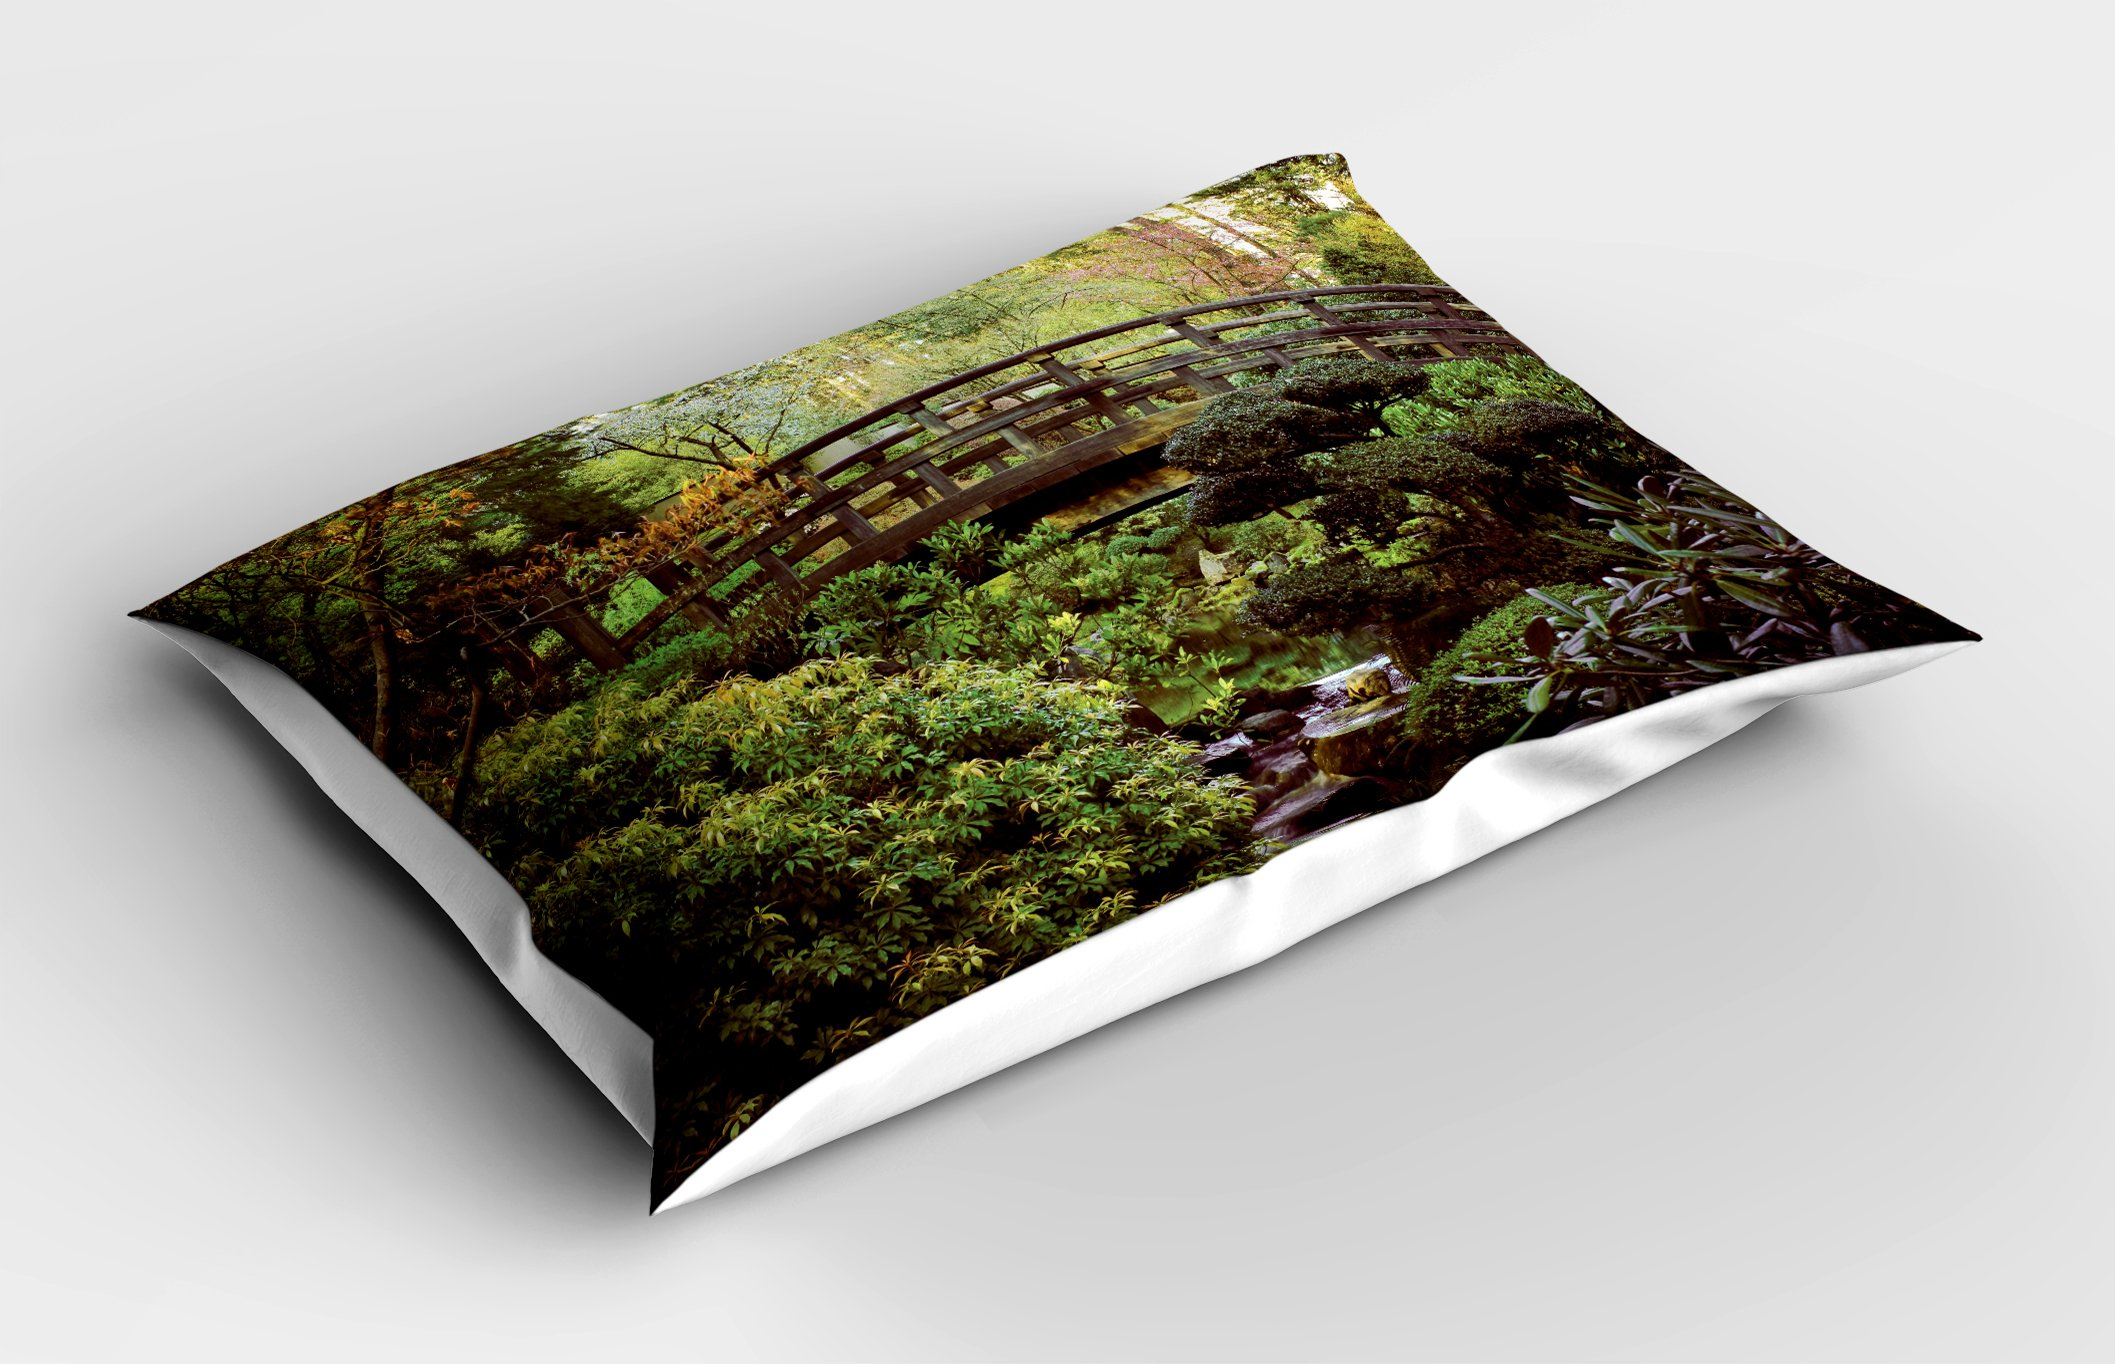 Lunarable Japanese Pillow Sham, Wood Bridge in Forest Serene Arboretum Relax Rest Spiritual Route Peace Landscape, Decorative Standard King Size Printed Pillowcase, 36 X 20 inches, Green Brown by Lunarable (Image #2)